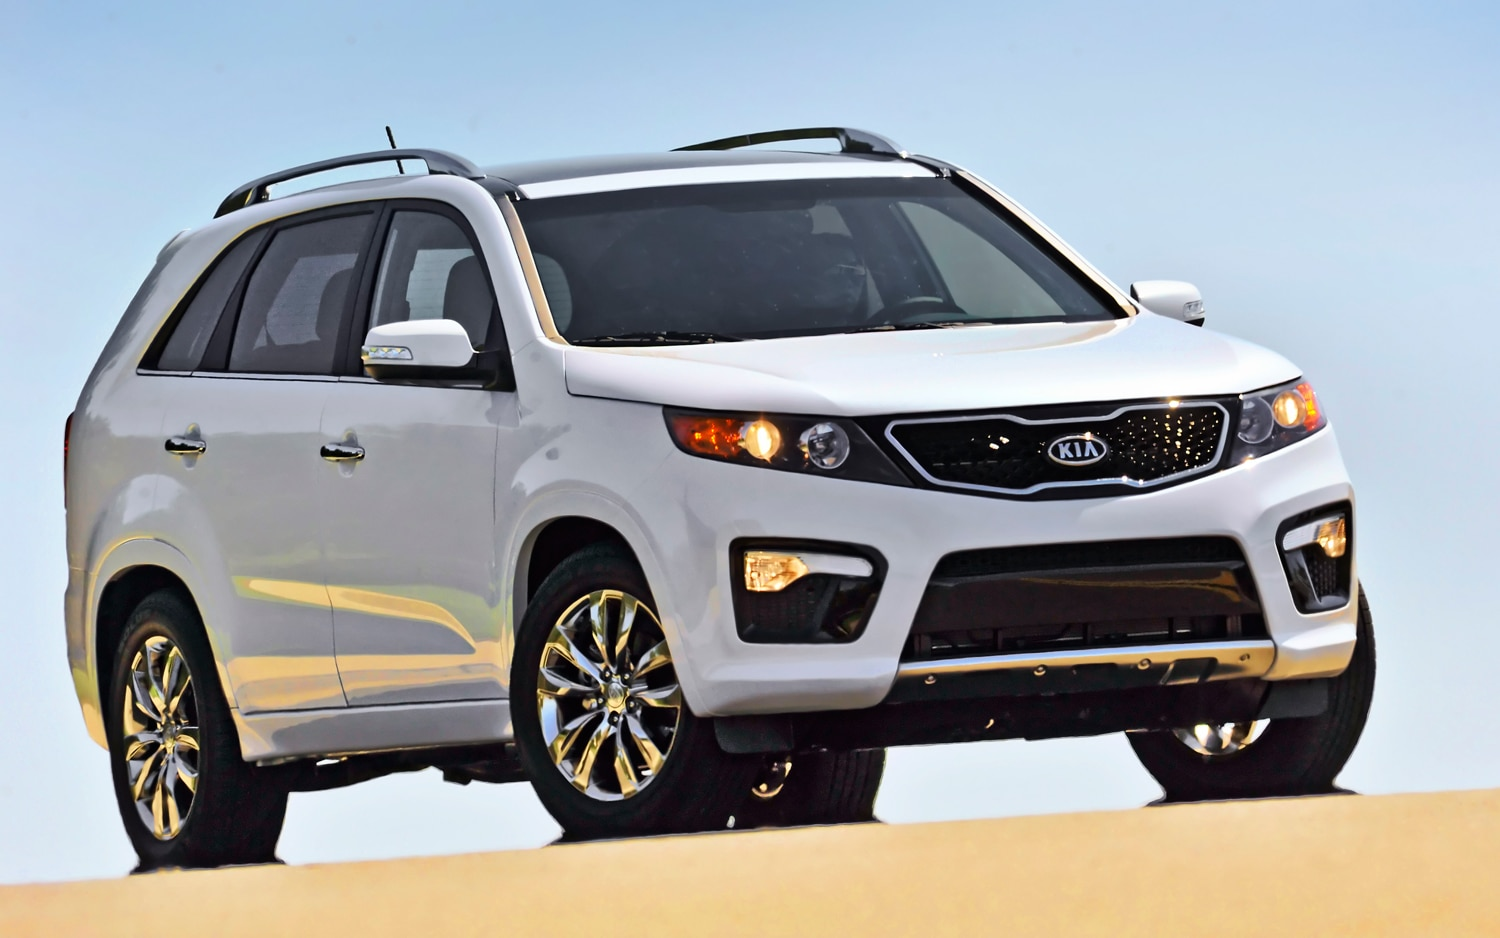 2012 Kia Sorento Front Right View 2